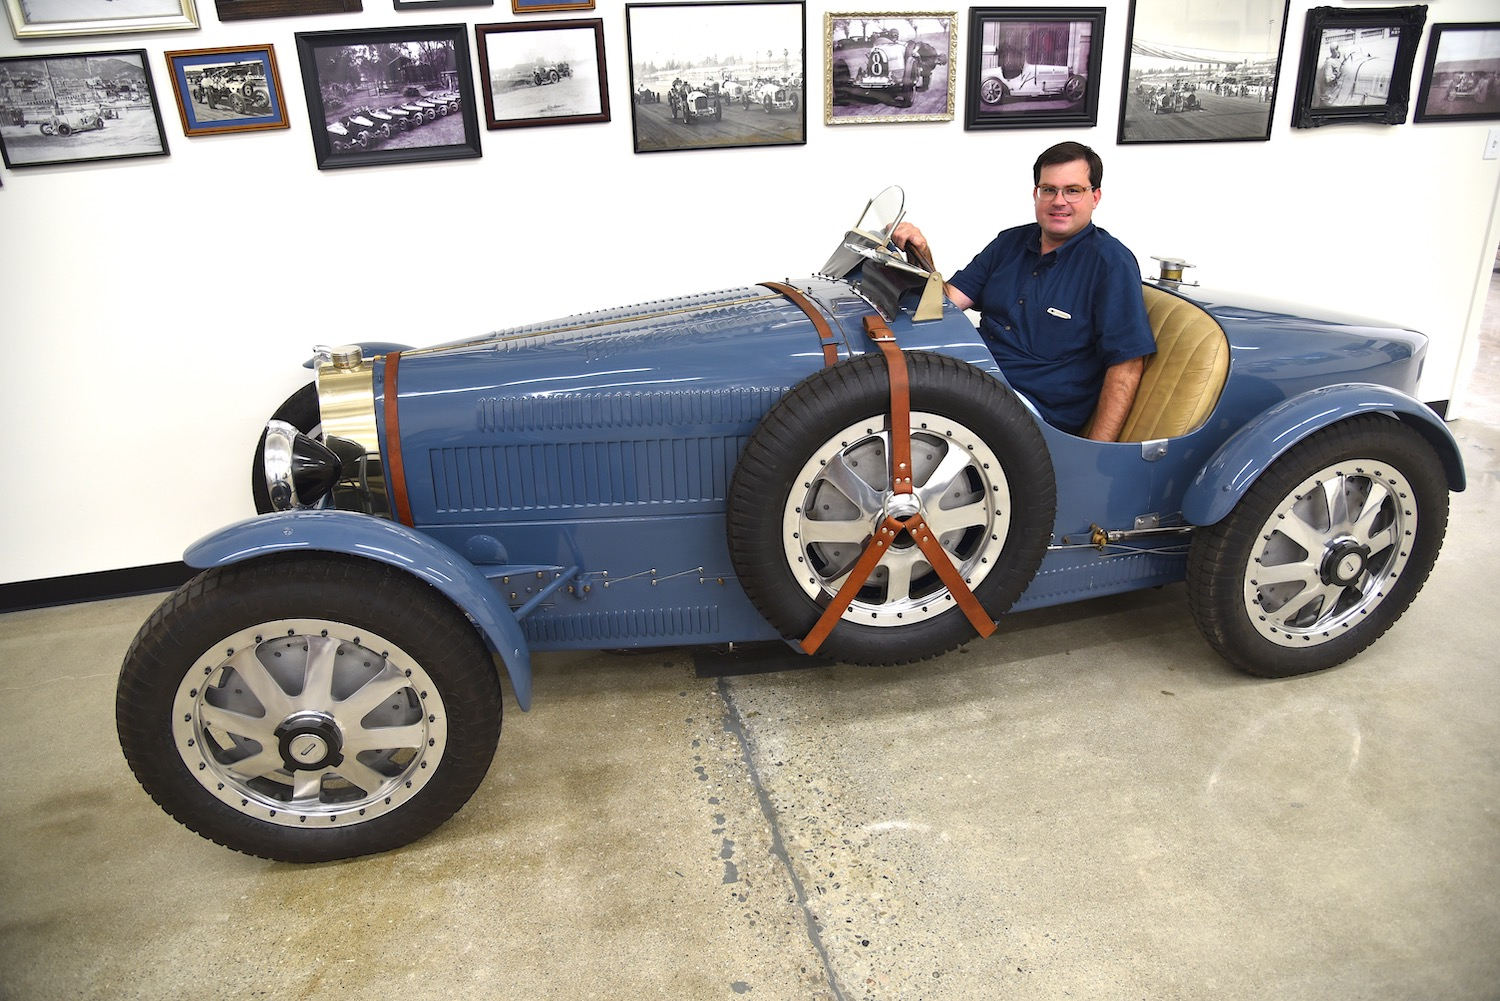 man seated in vintage race roadster